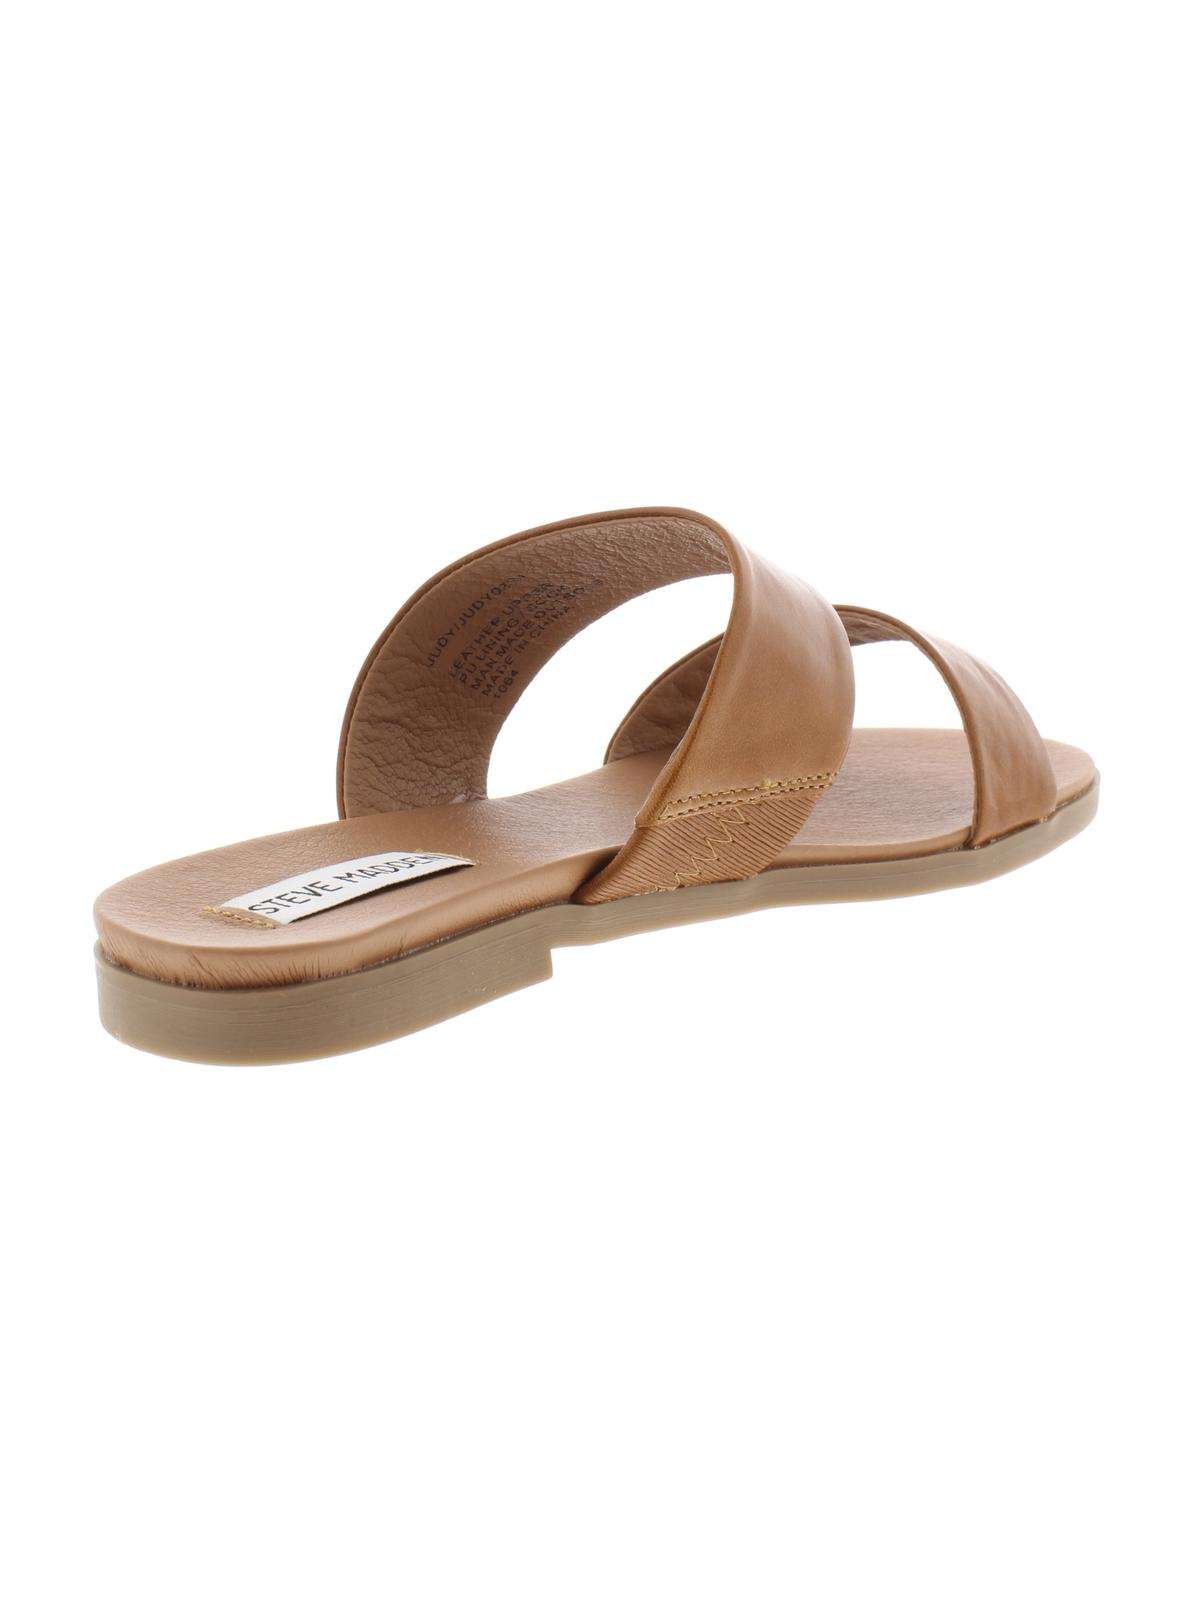 c2ecc1270db Steve Madden - Steve Madden Womens Judy Leather Open Toe Casual Slide  Sandals - Walmart.com